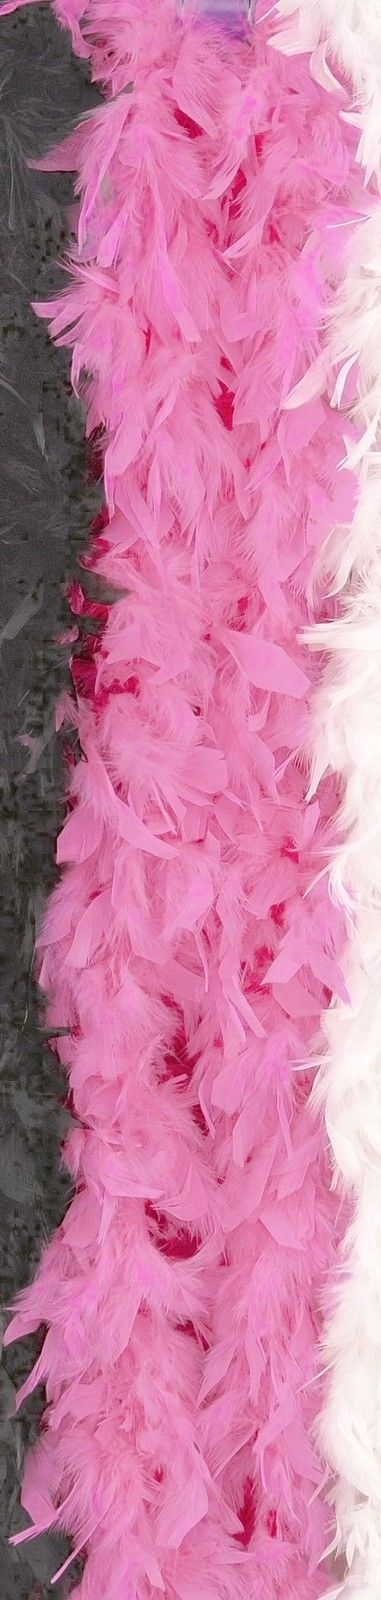 H1 White Feather Boa Fluffy Craft Decoration 6.6 Feet Long